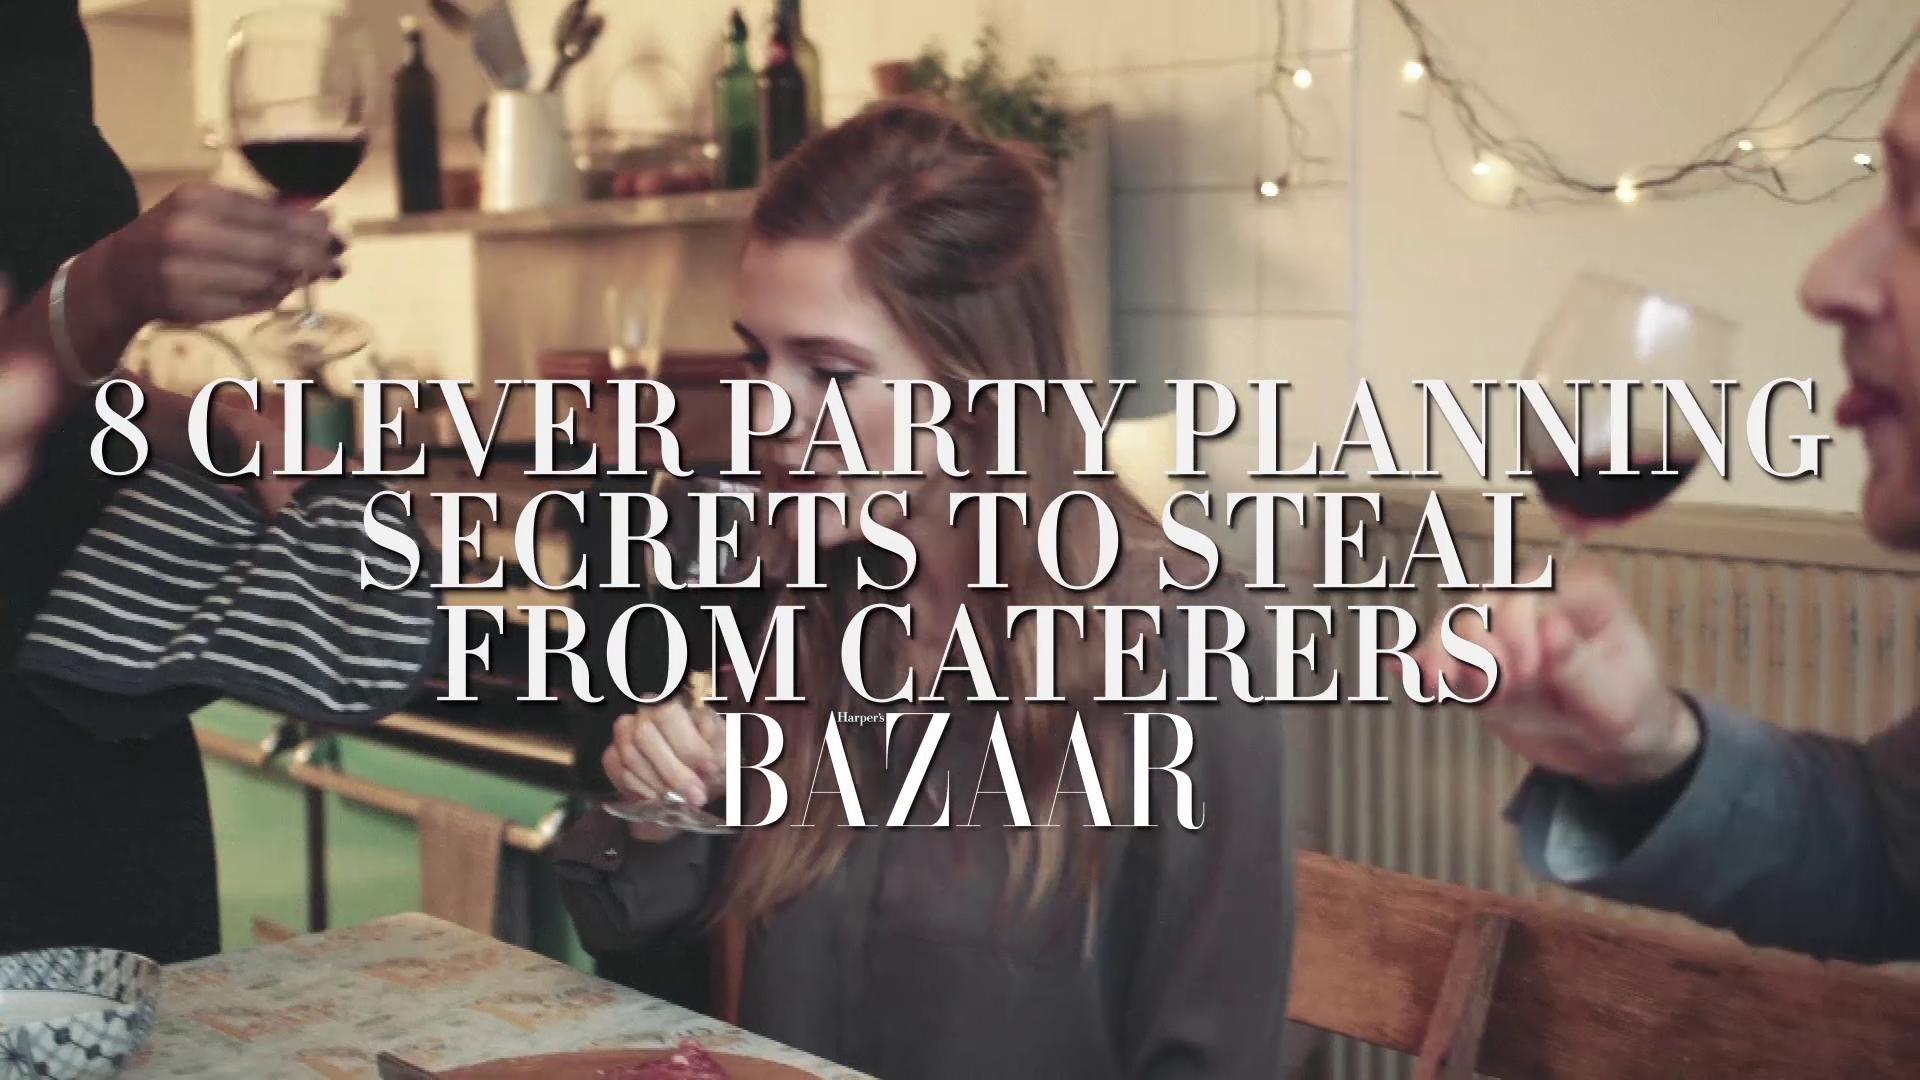 Caterers swear by these 8 party-planning tricks https://t.co/tdFfZ1zpvN